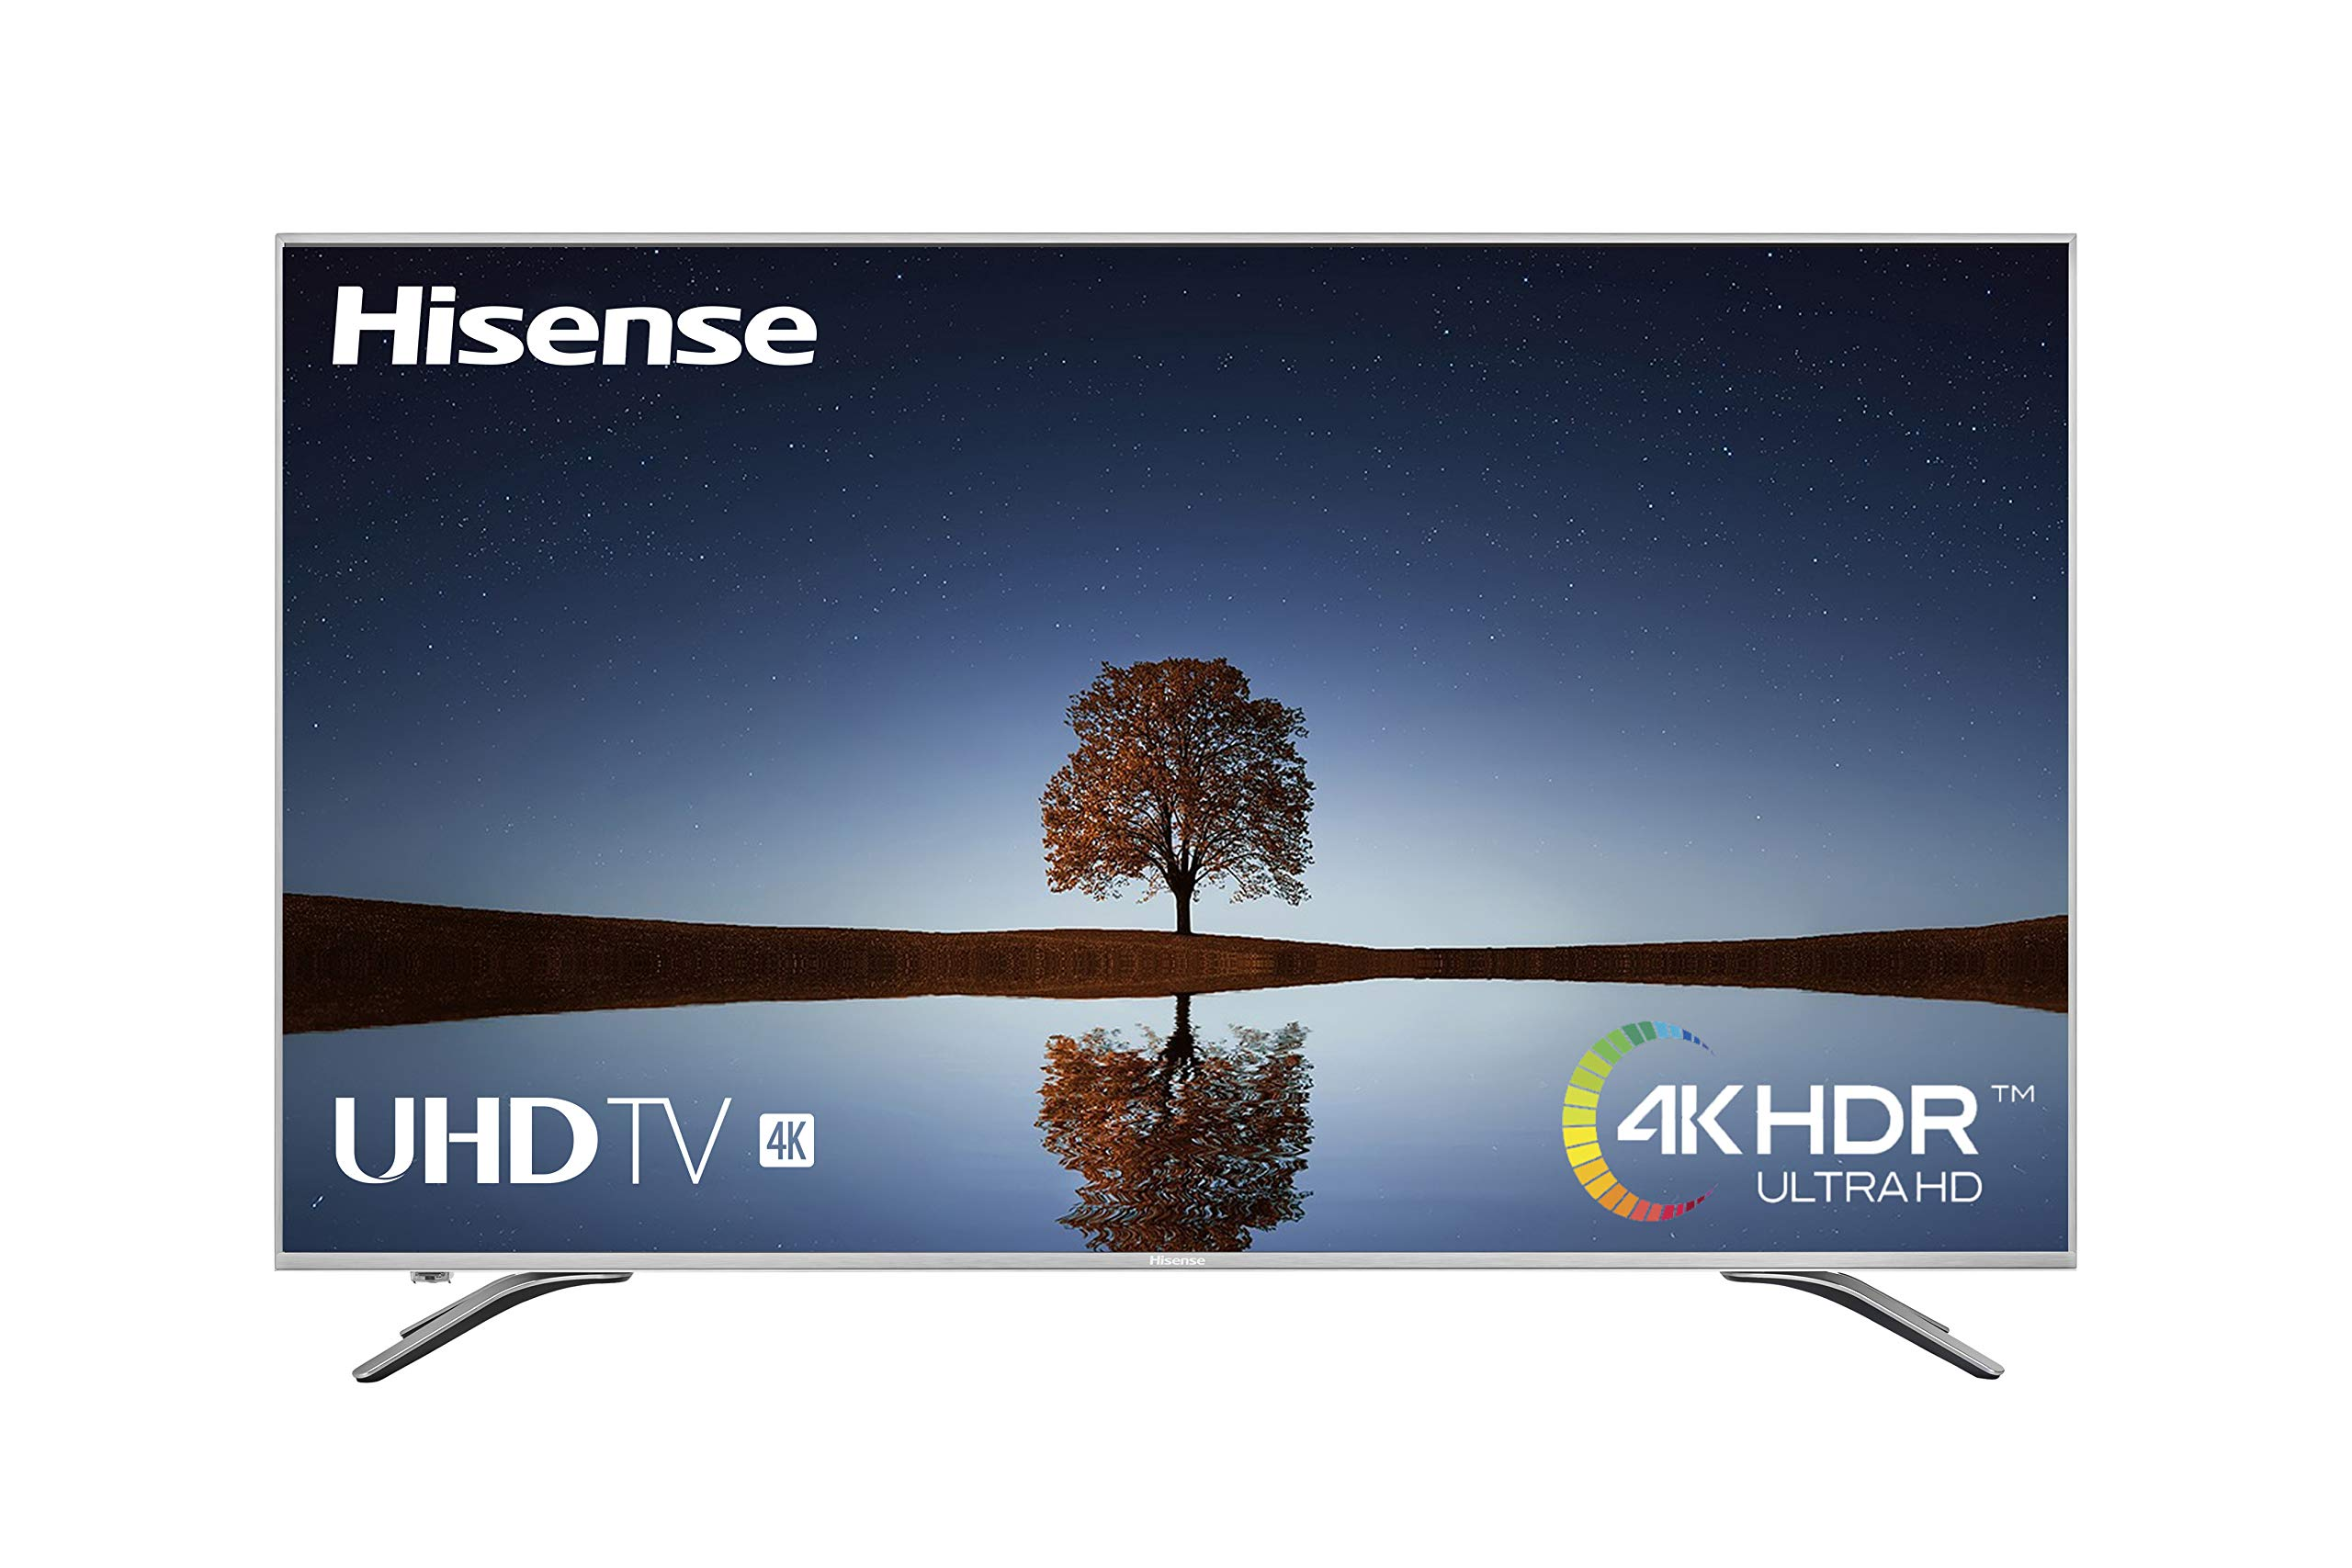 Hisense H65A6500, Smart TV VIDAA U, Diseño Metálico, Modo Deportes, 4K Ultra HD, HDR, Precision Color, Super Contraste, Remote, WIFI Ethernet USB, 65